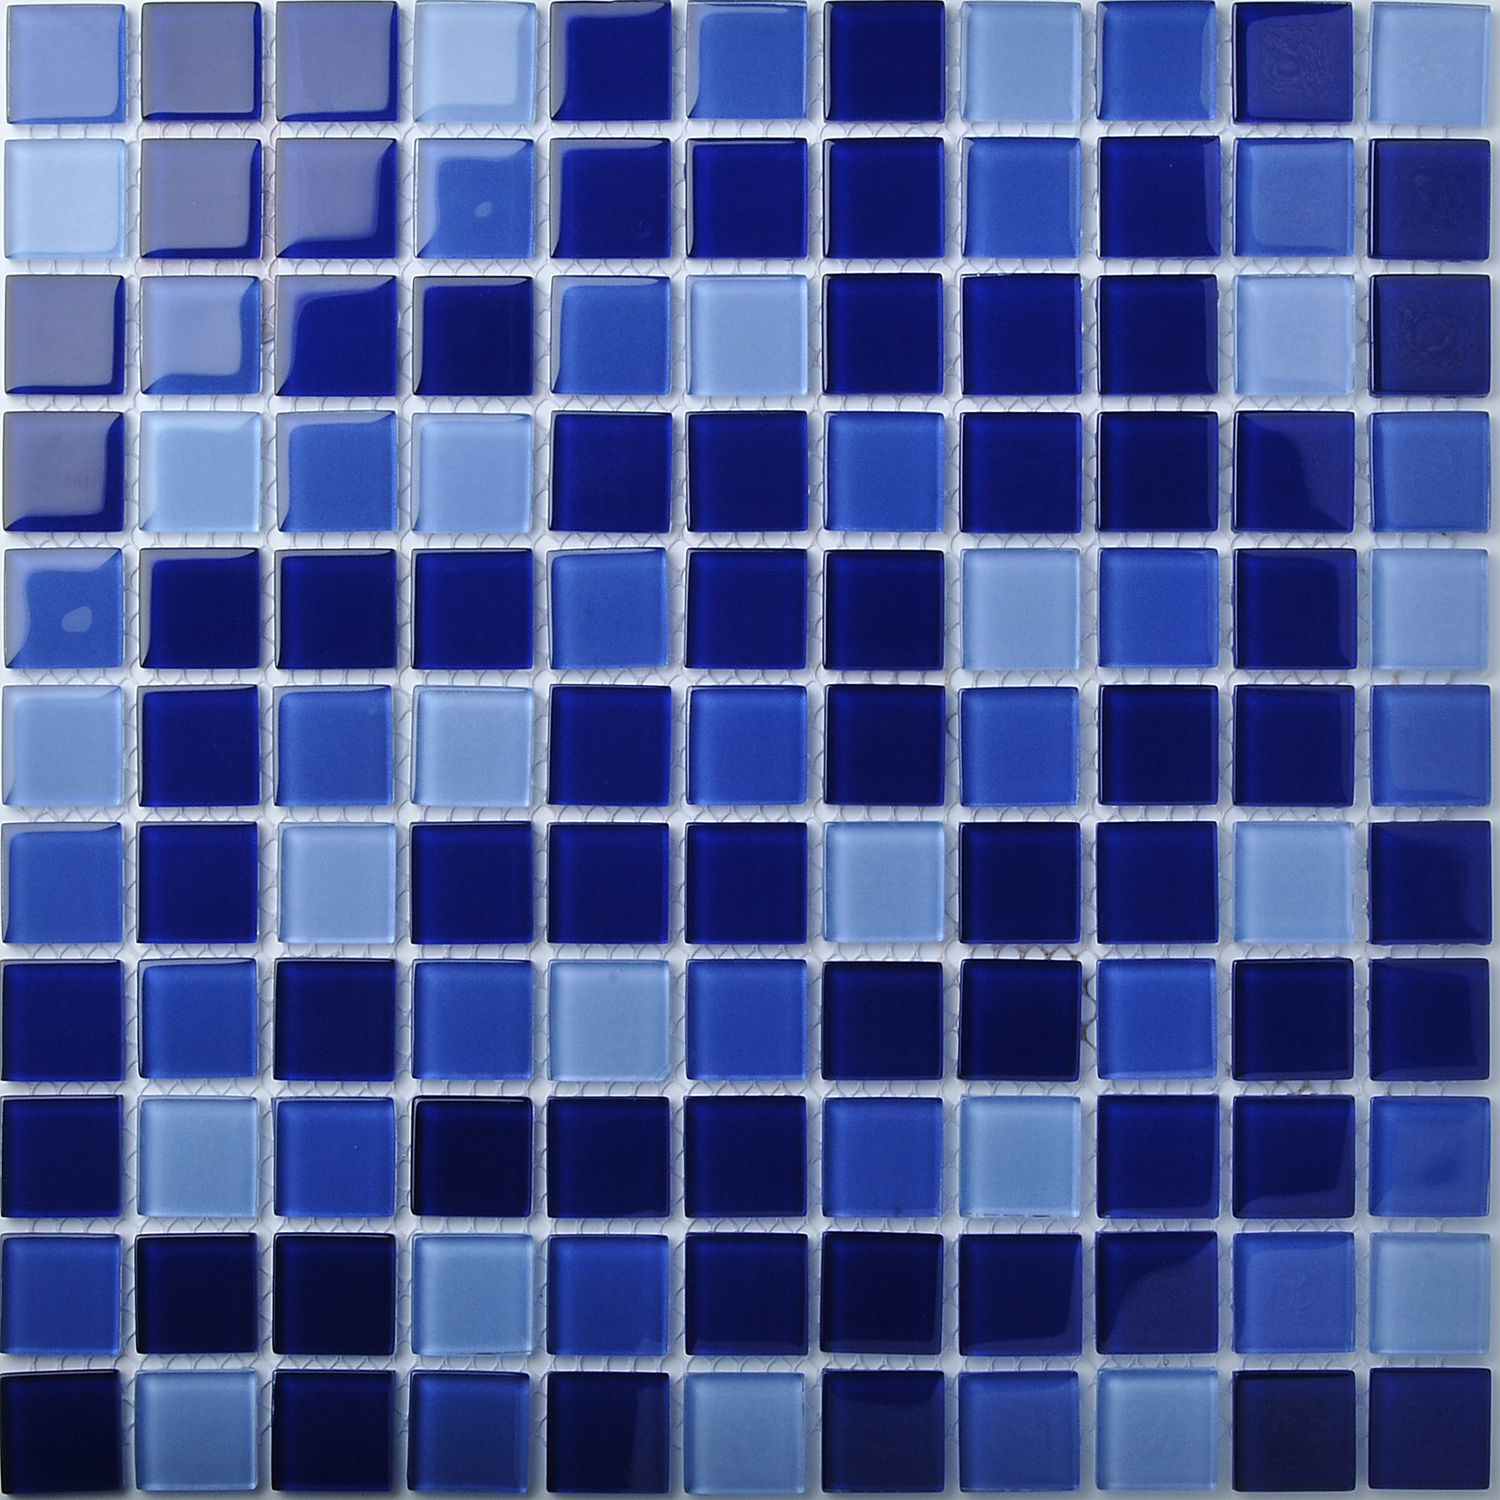 TST Crystal Glass Tiles Deep Blue Gorgeous Shinny Designed Mosaic Tile Cutting Bathroom Remodeling. View more : http://www.tstmosaictiles.com/index.php?route=product/product&product_id=336&search=TSTFLY01